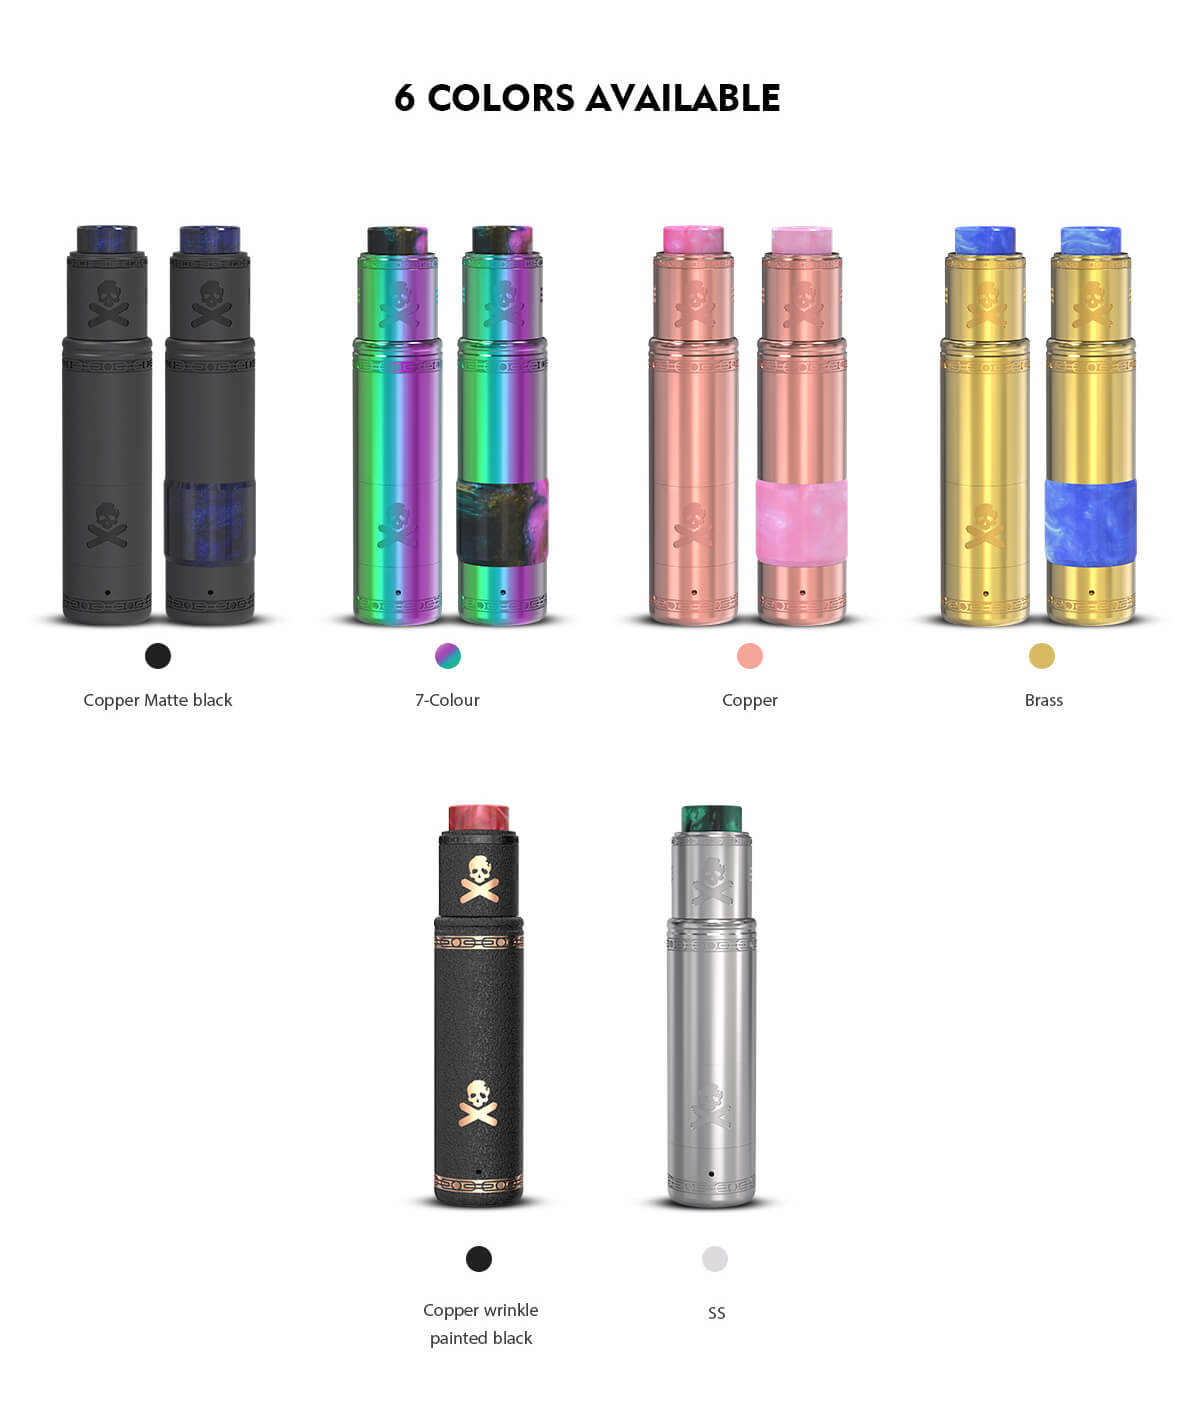 Vandy Vape Bonza Mechanical Mod Kit Six Colors Available